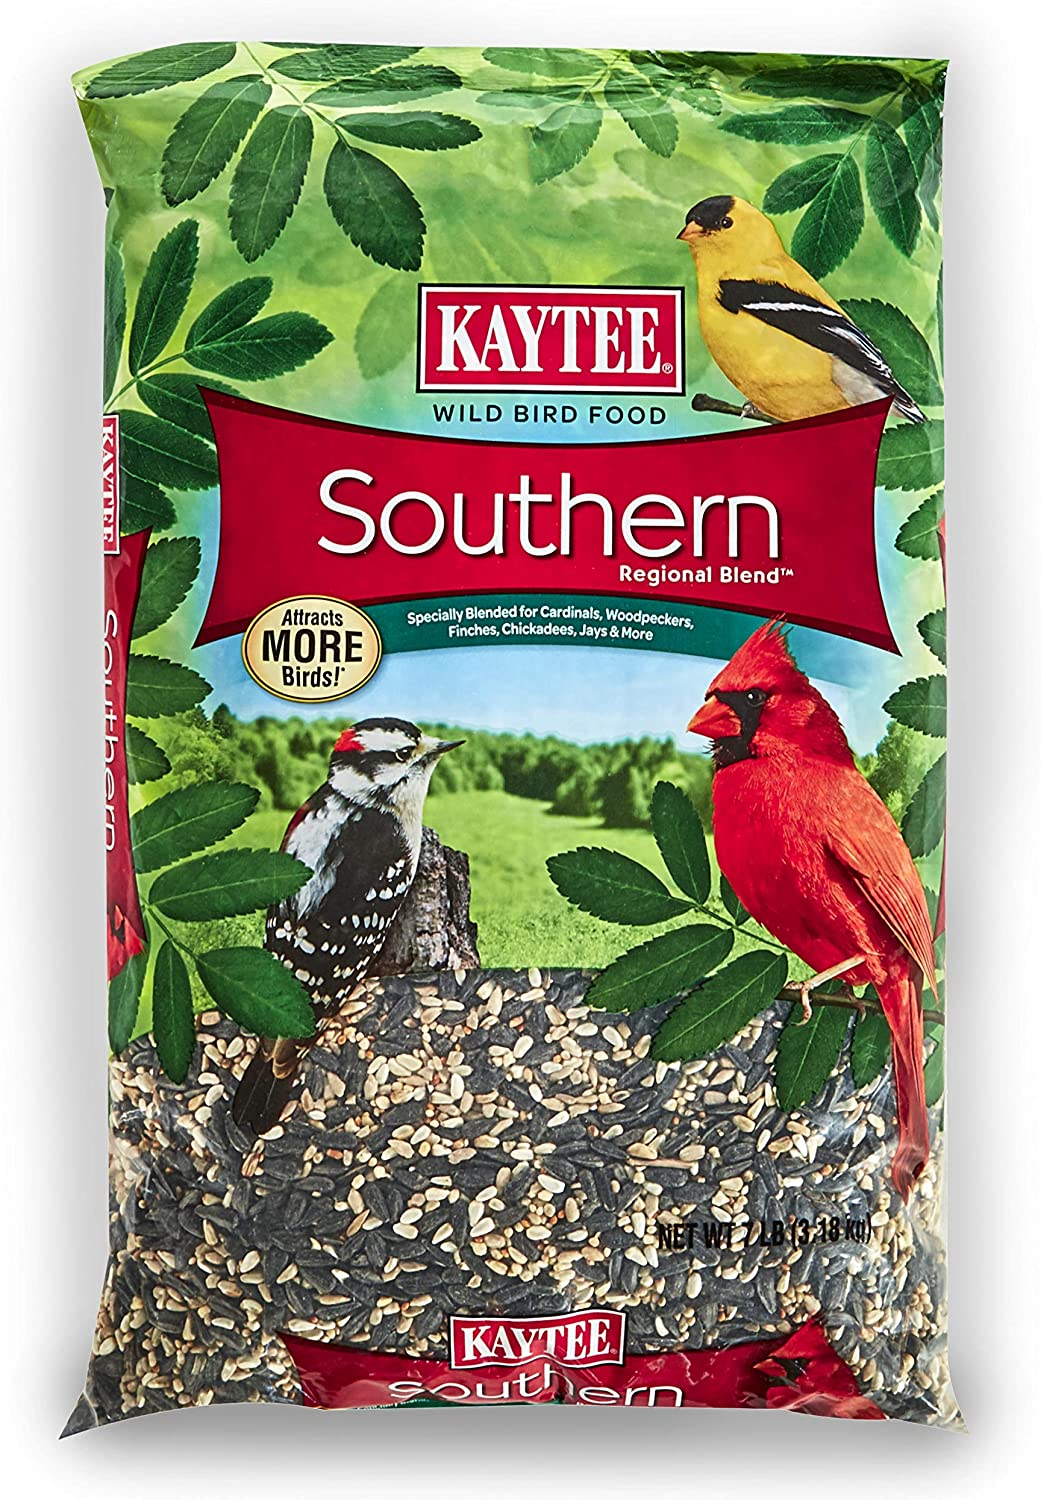 Kaytee Southern Regional Wild Bird Blend, 7-Pound Bag